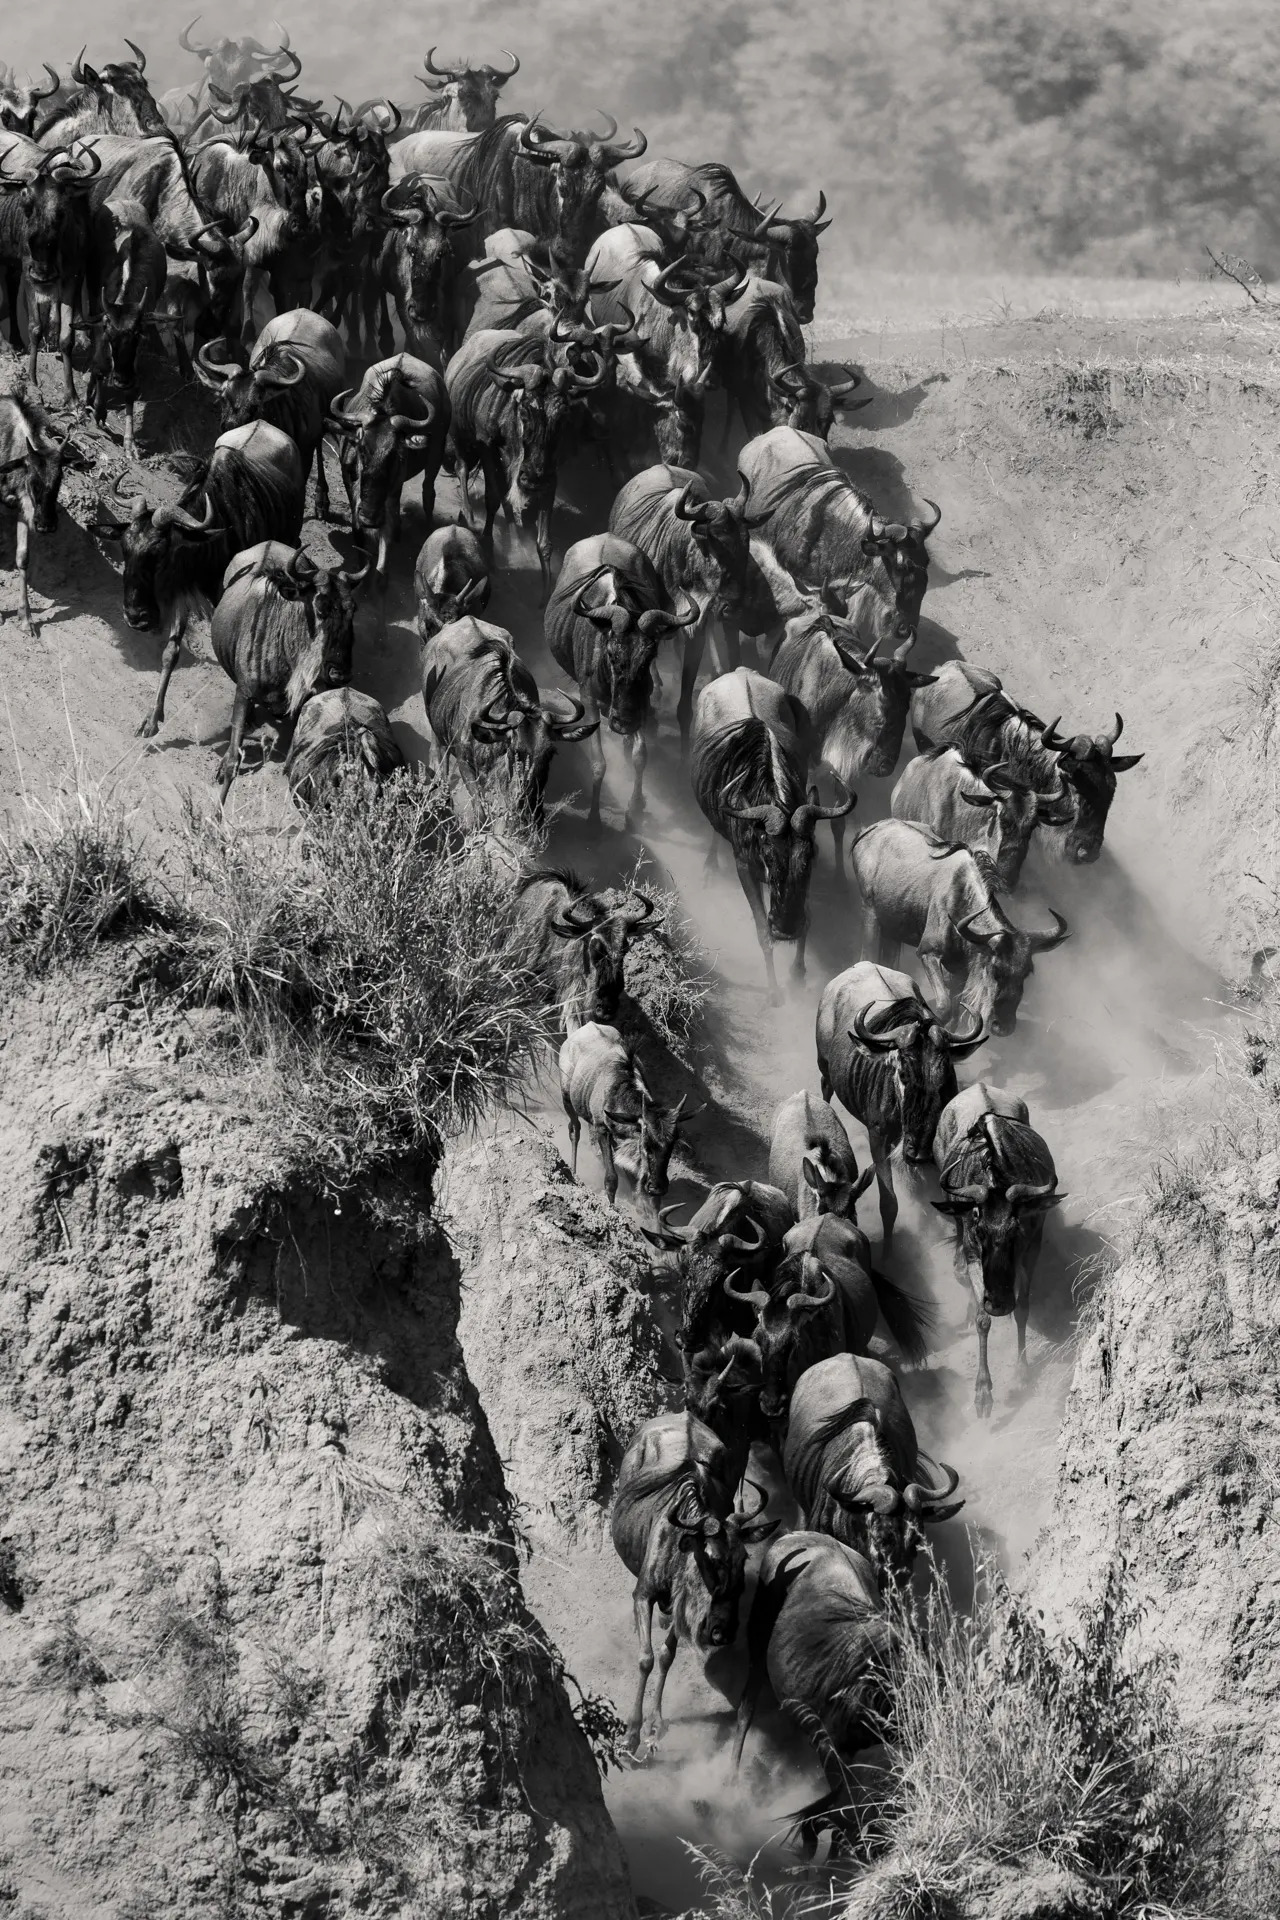 The migration rush - black and white